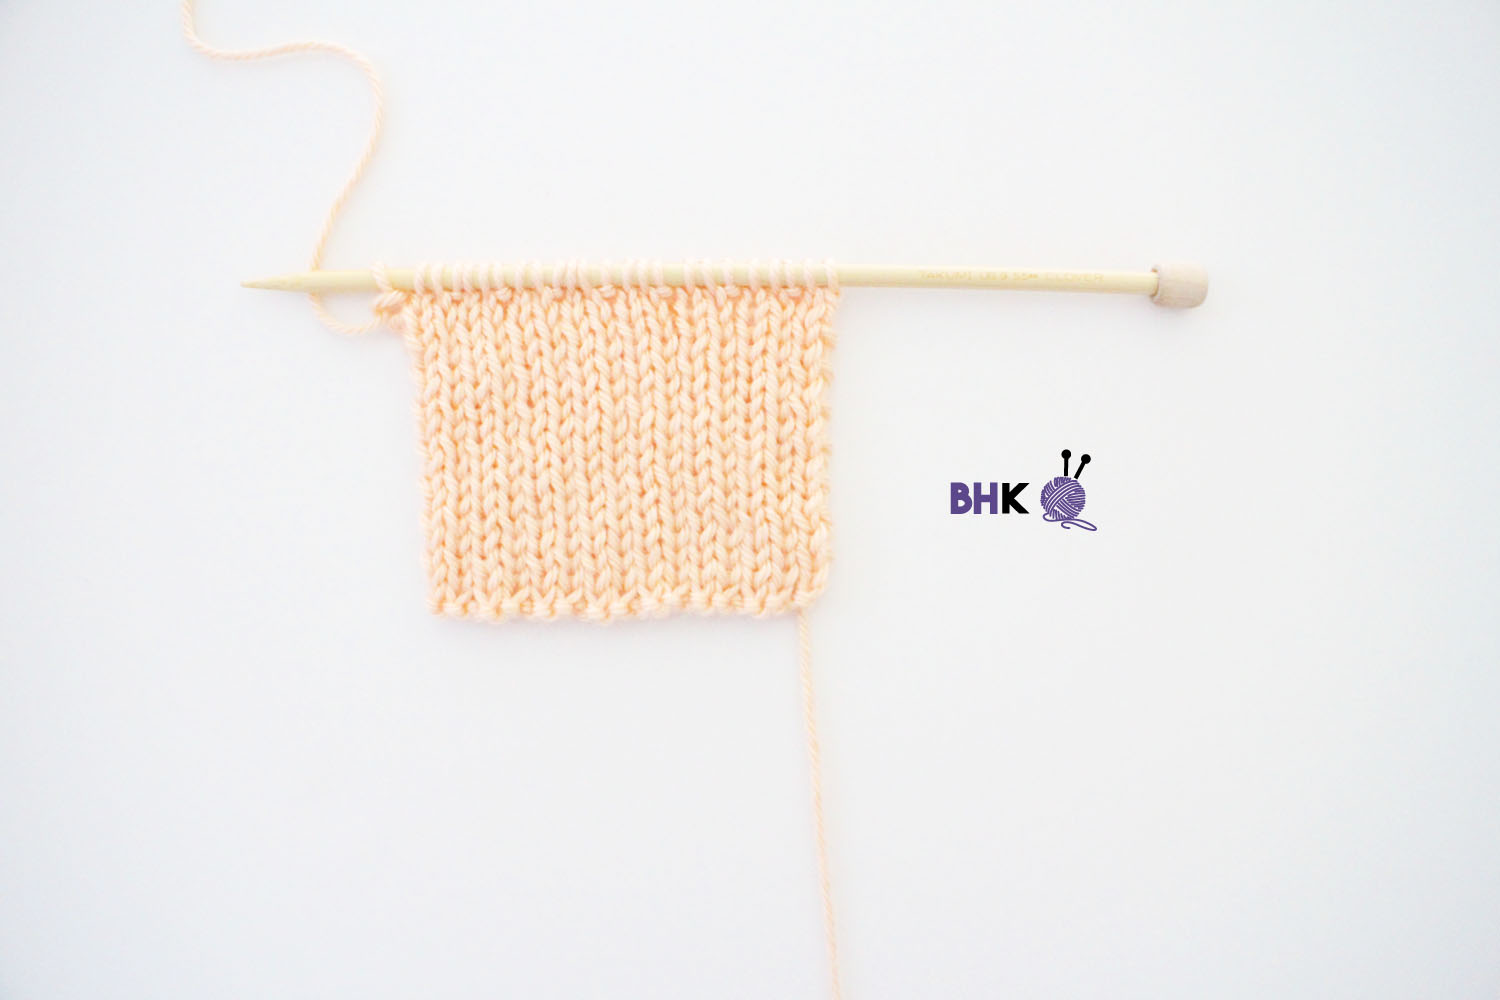 Knitting Rib Stitch For Beginners : How to knit the rib stitch for complete beginners